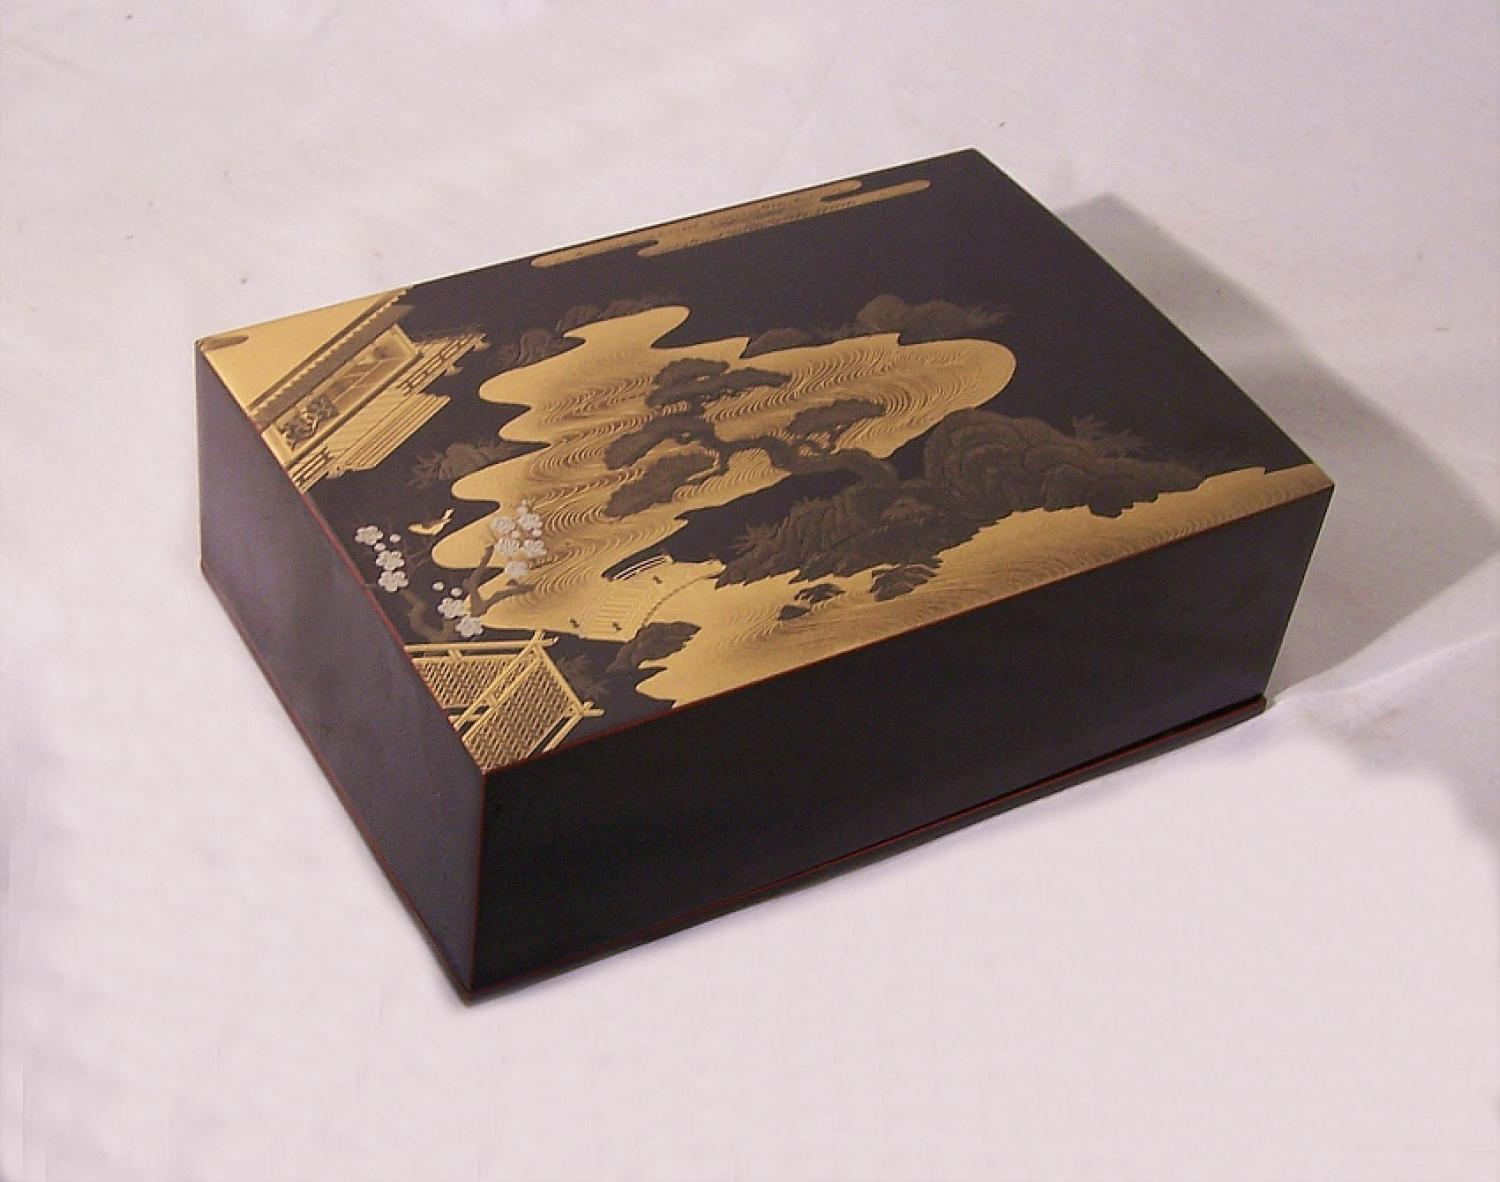 Japanese vintage lacquer box